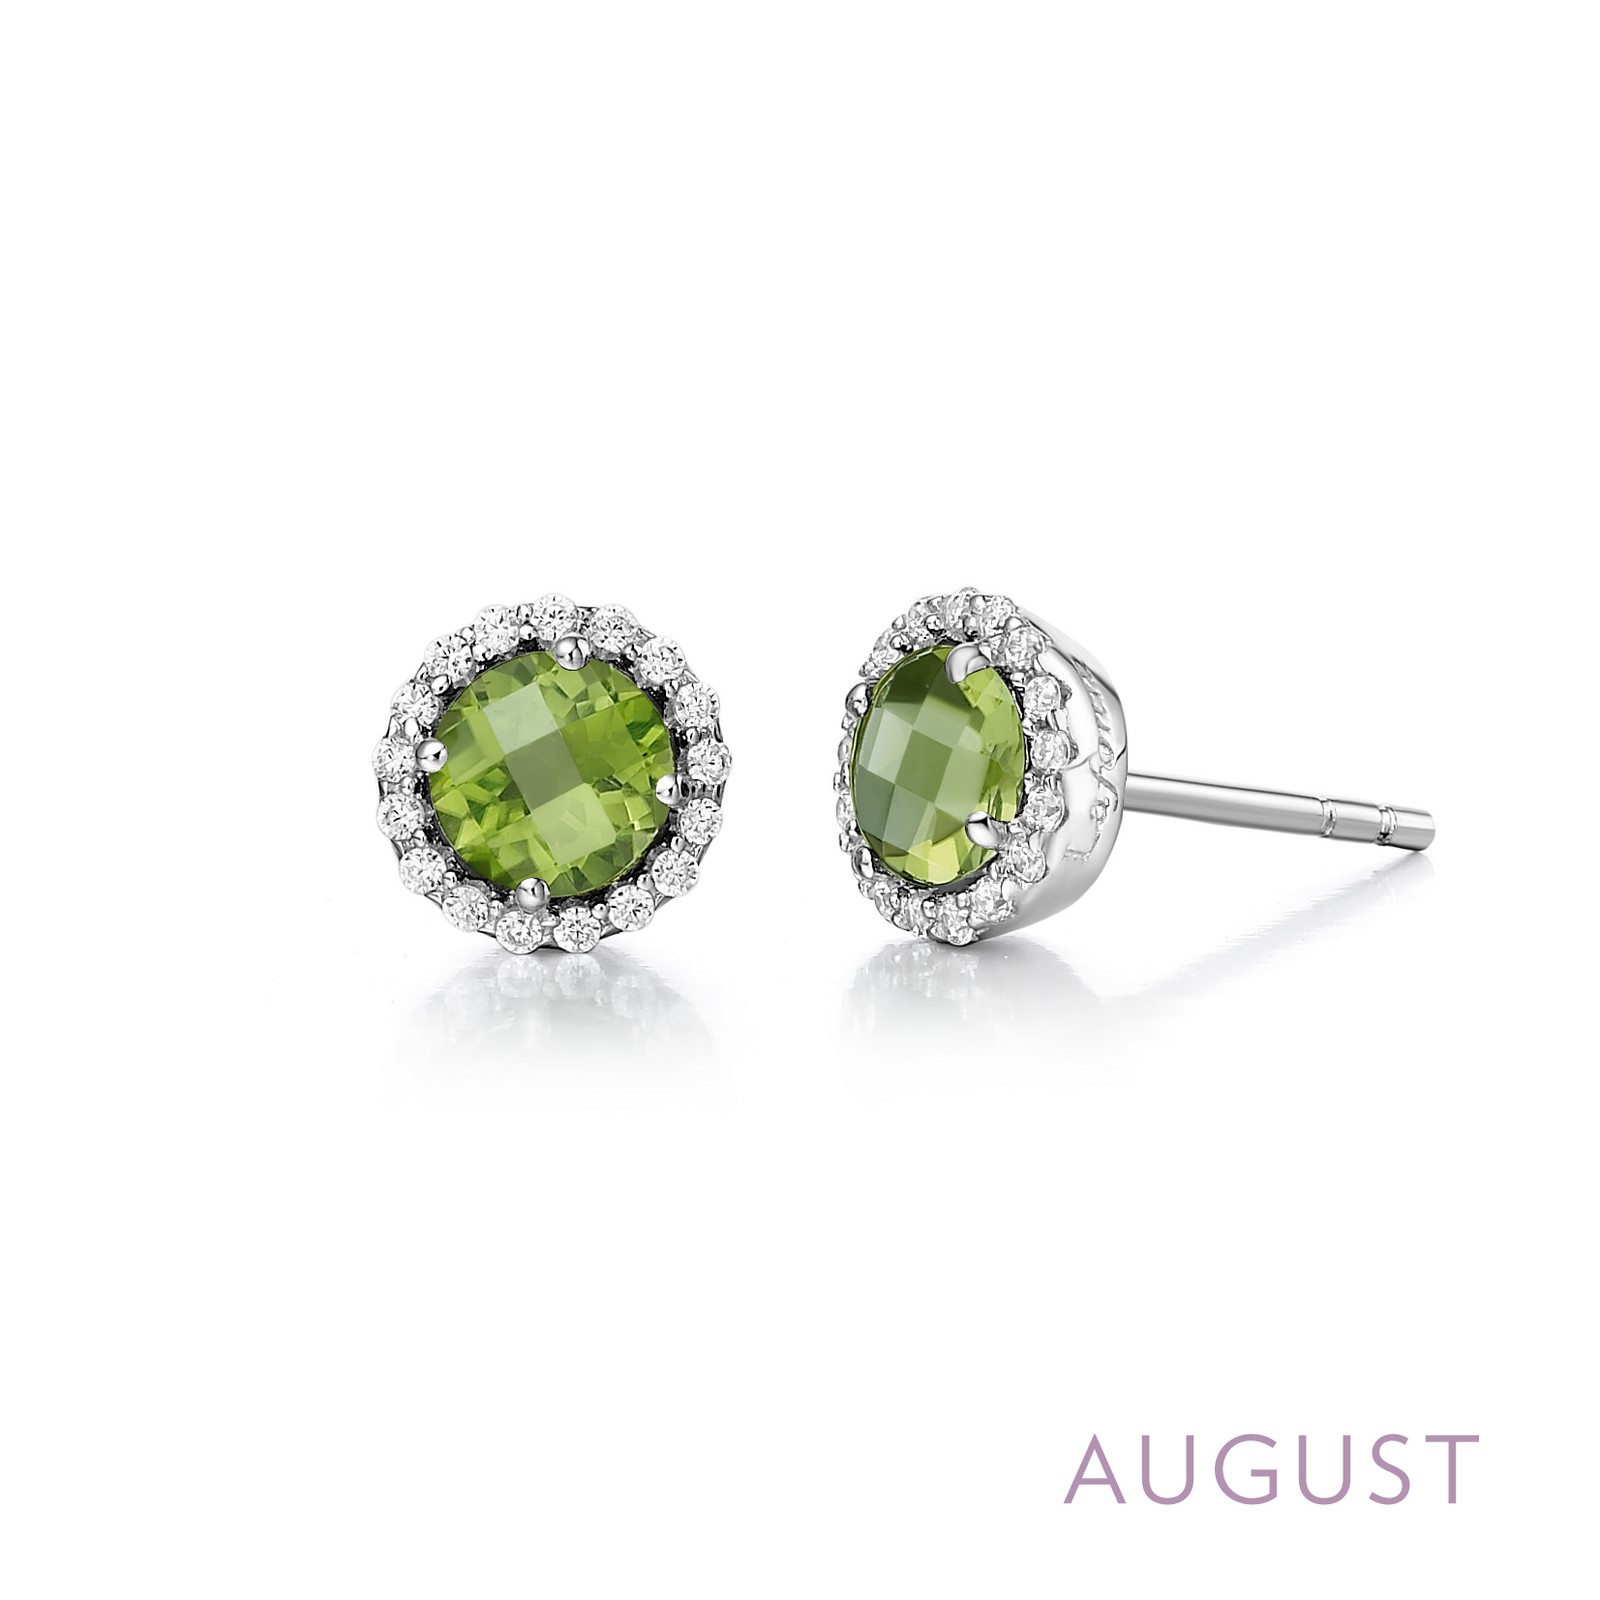 LaFonn Earrings - ER PERIDOT/CL S.S. PT SIMULATED DIAMOND 0.34 CTTW PER RD:5.00MM ( SET: BR001PDP, BN001PDP18 )